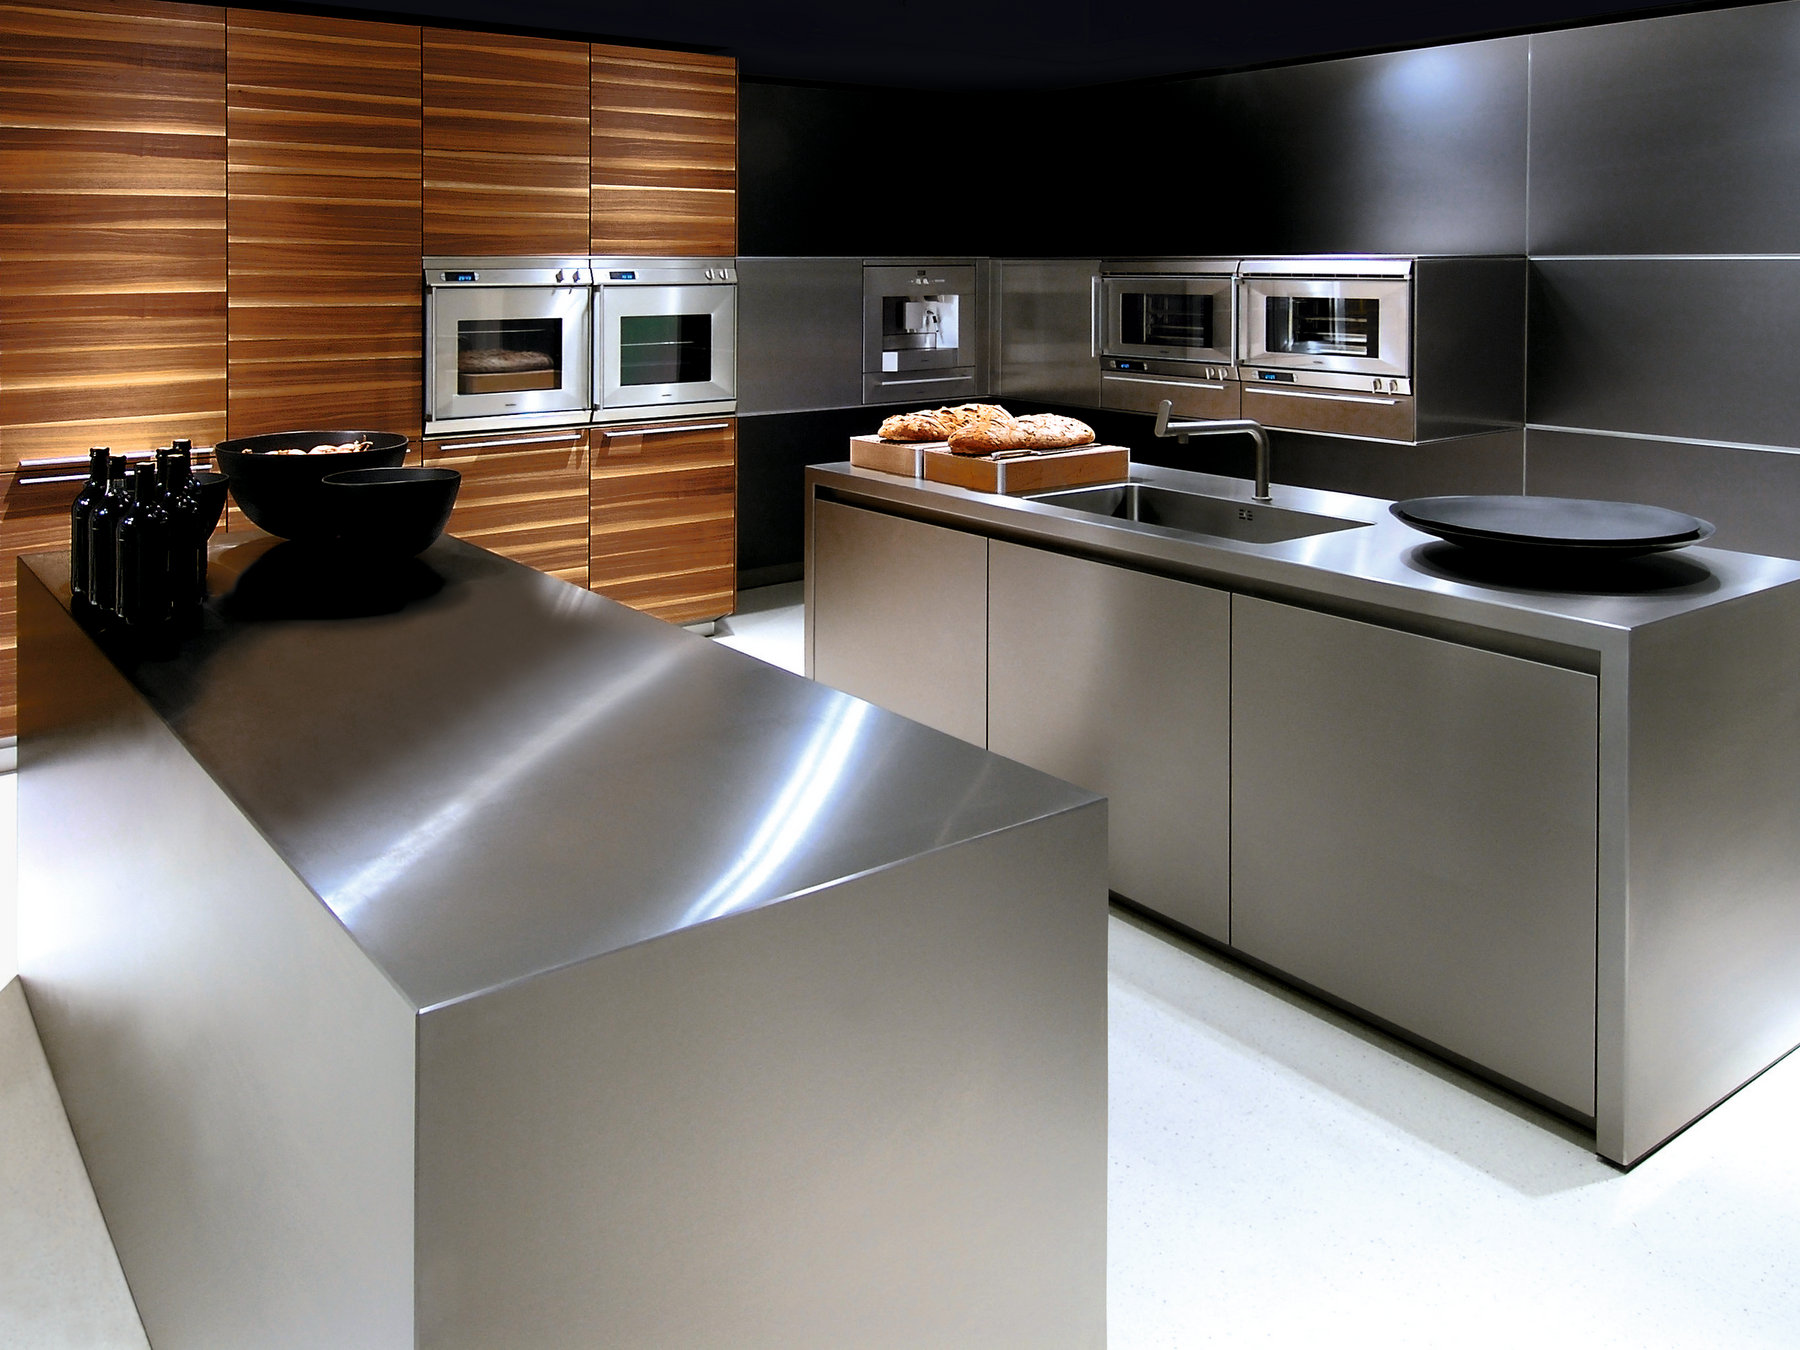 b3 stainless steel kitchen by bulthaup. Black Bedroom Furniture Sets. Home Design Ideas